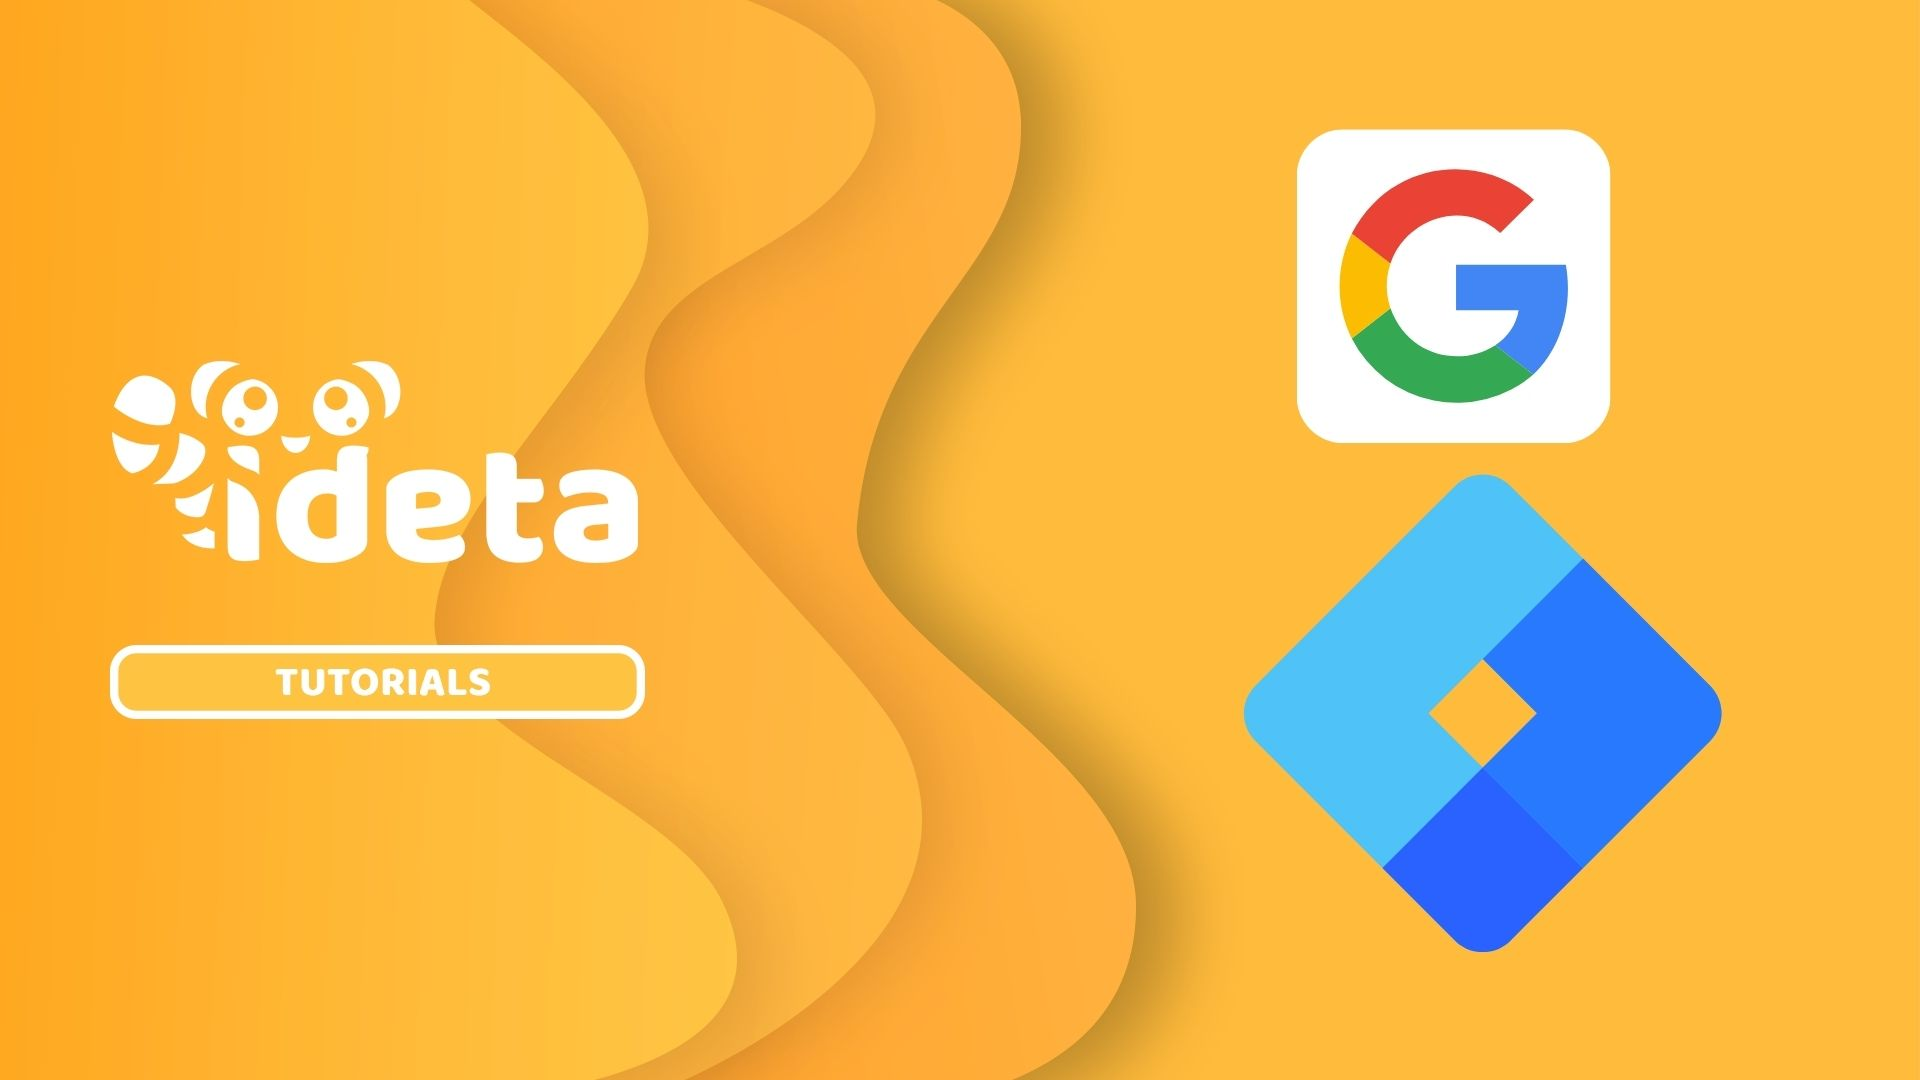 Deploy your chatbot with Google Tag Manager